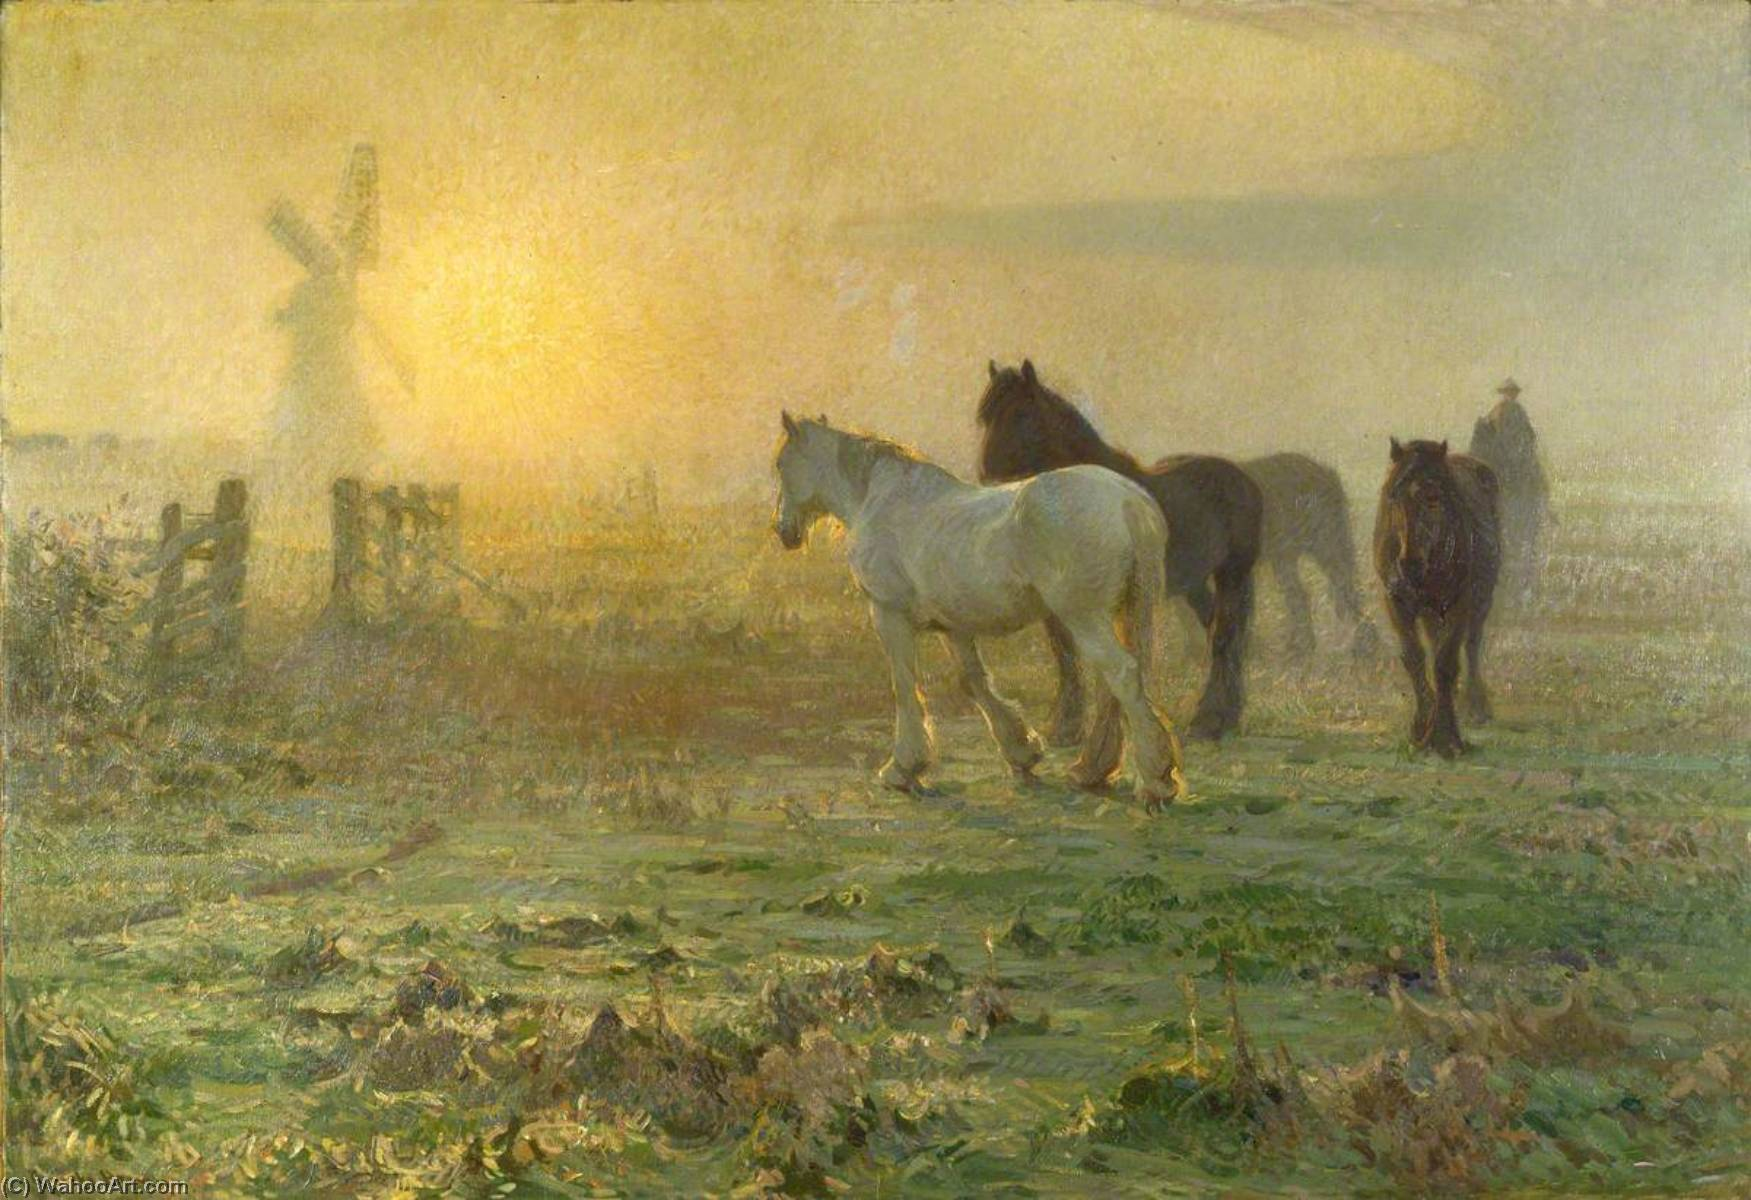 The Coming Day, Oil On Canvas by John Alfred Arnesby Brown